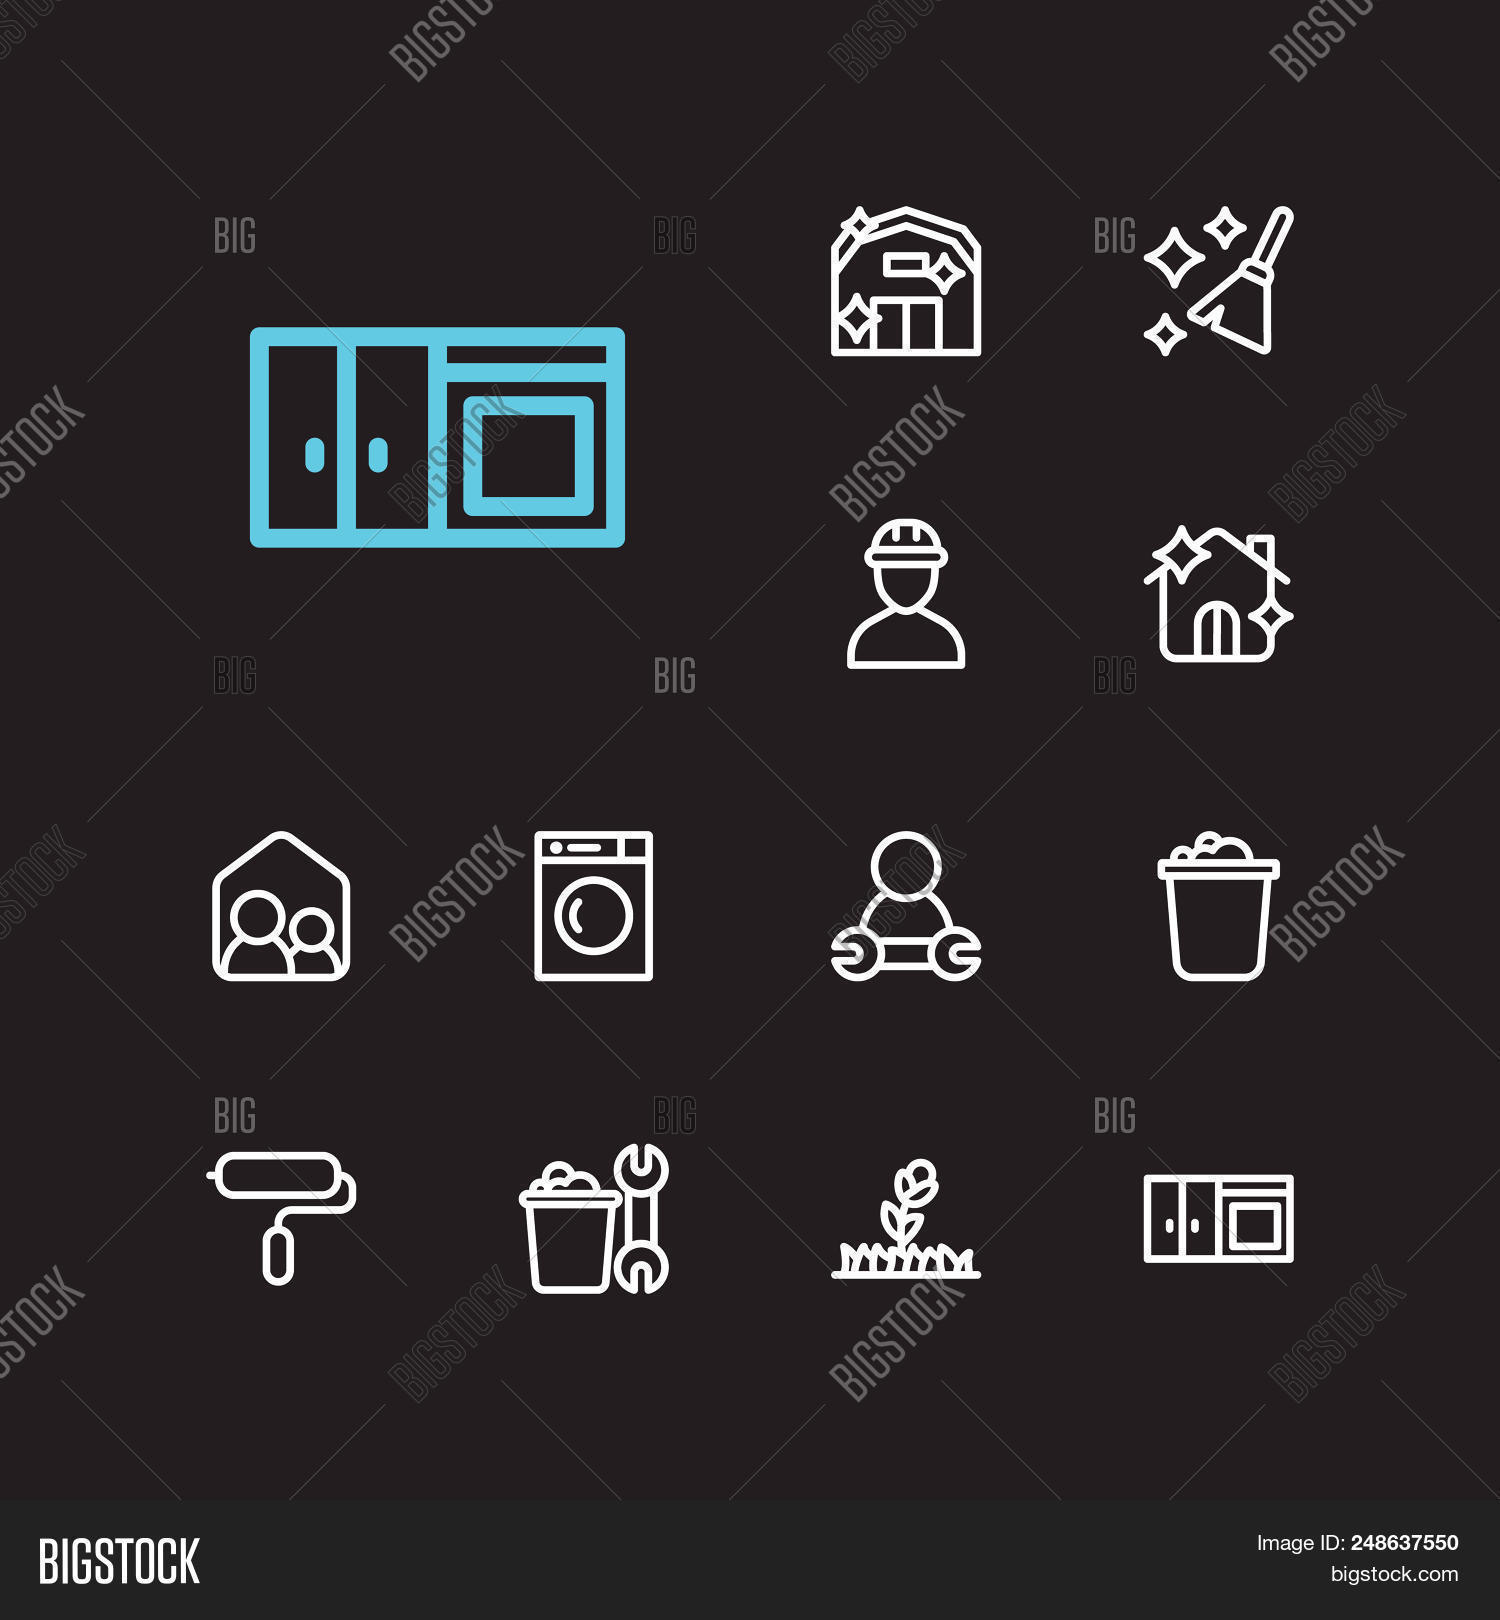 Housekeeping Icons Set. Housekeeping Tool And Housekeeping Icons With Cleaning, Housekeeper And Plan